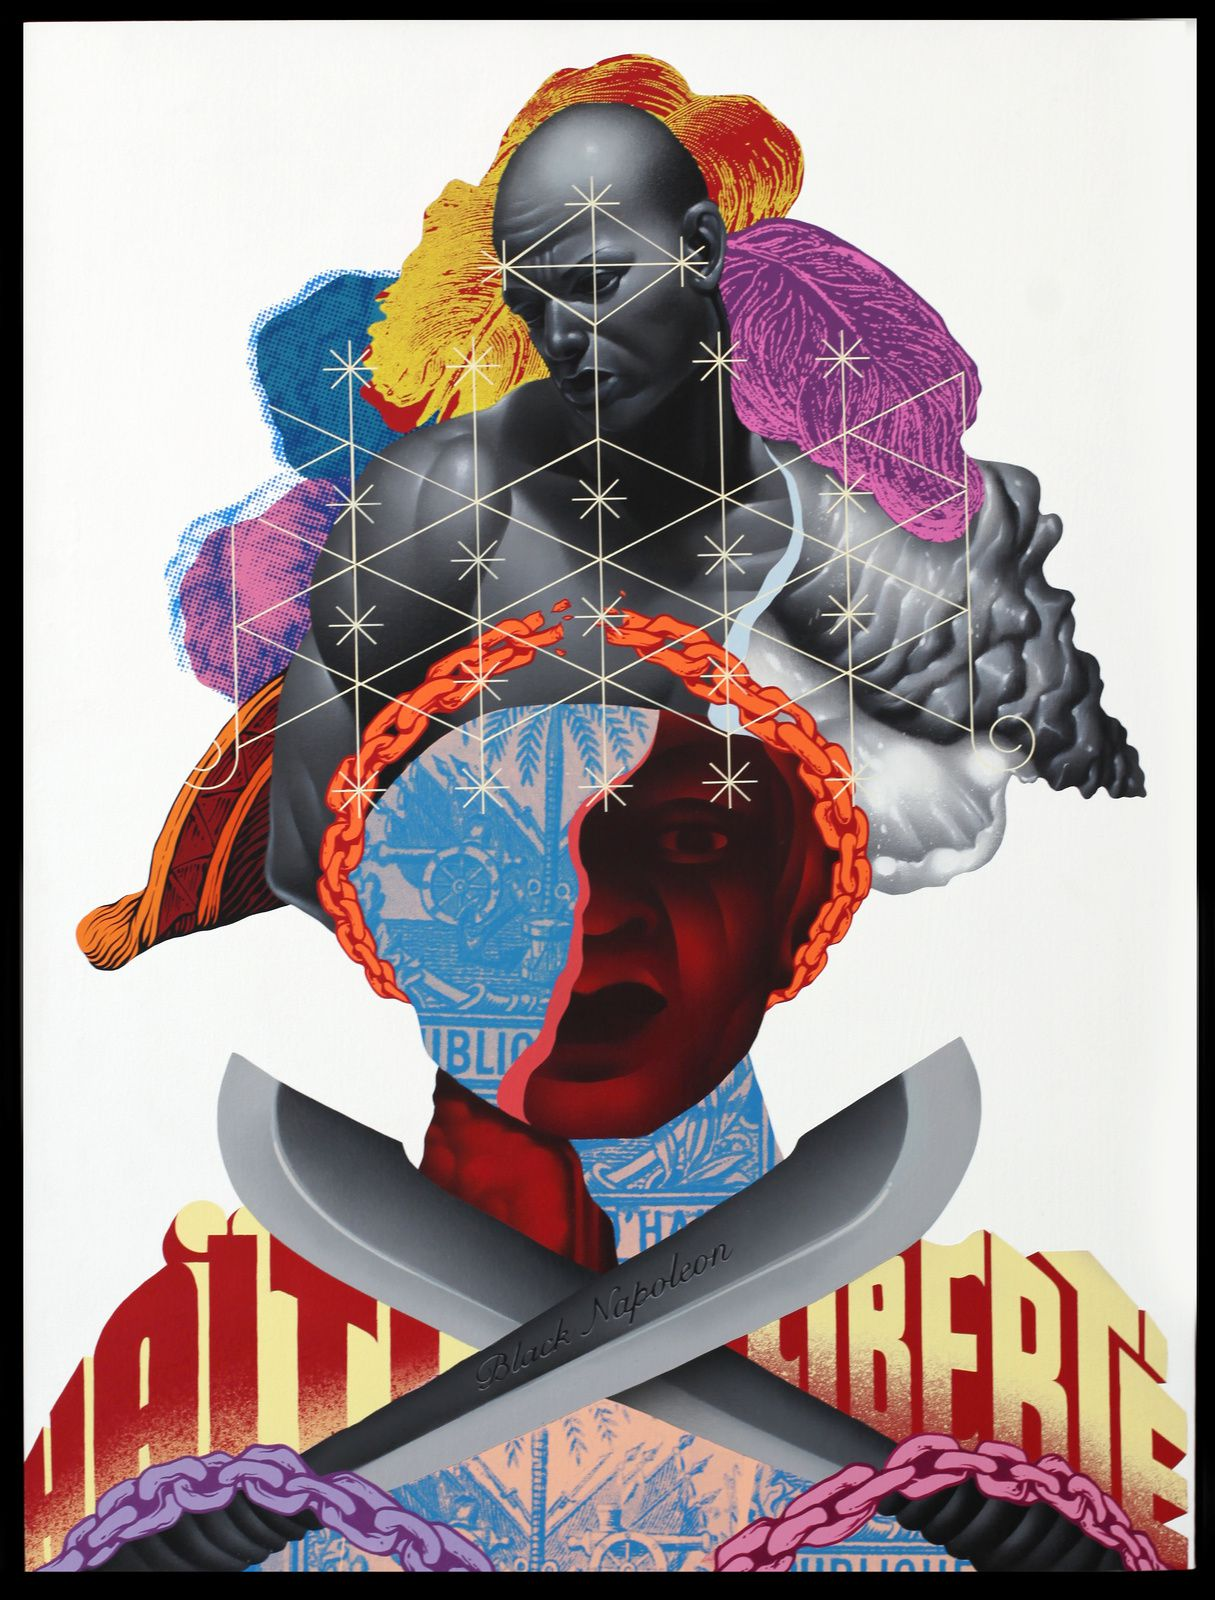 """Black Napoleon"" de Tristan EATON - Courtesy Galerie Itinerrance © Photo Éric Simon"